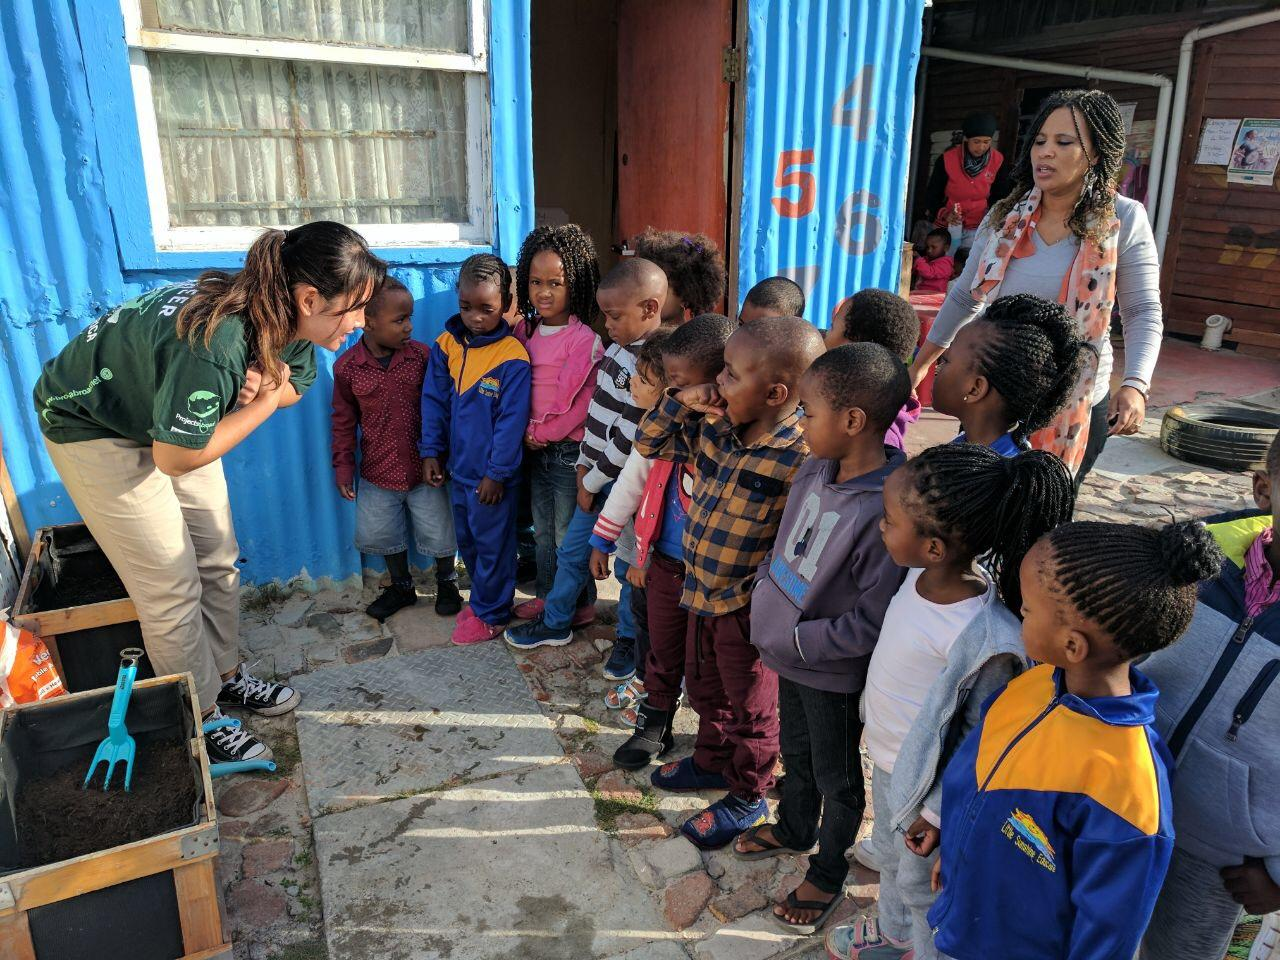 A female intern from Projects Abroad is pictured teaching a group of children about growing vegetables as part of her nutrition internship in South Africa.